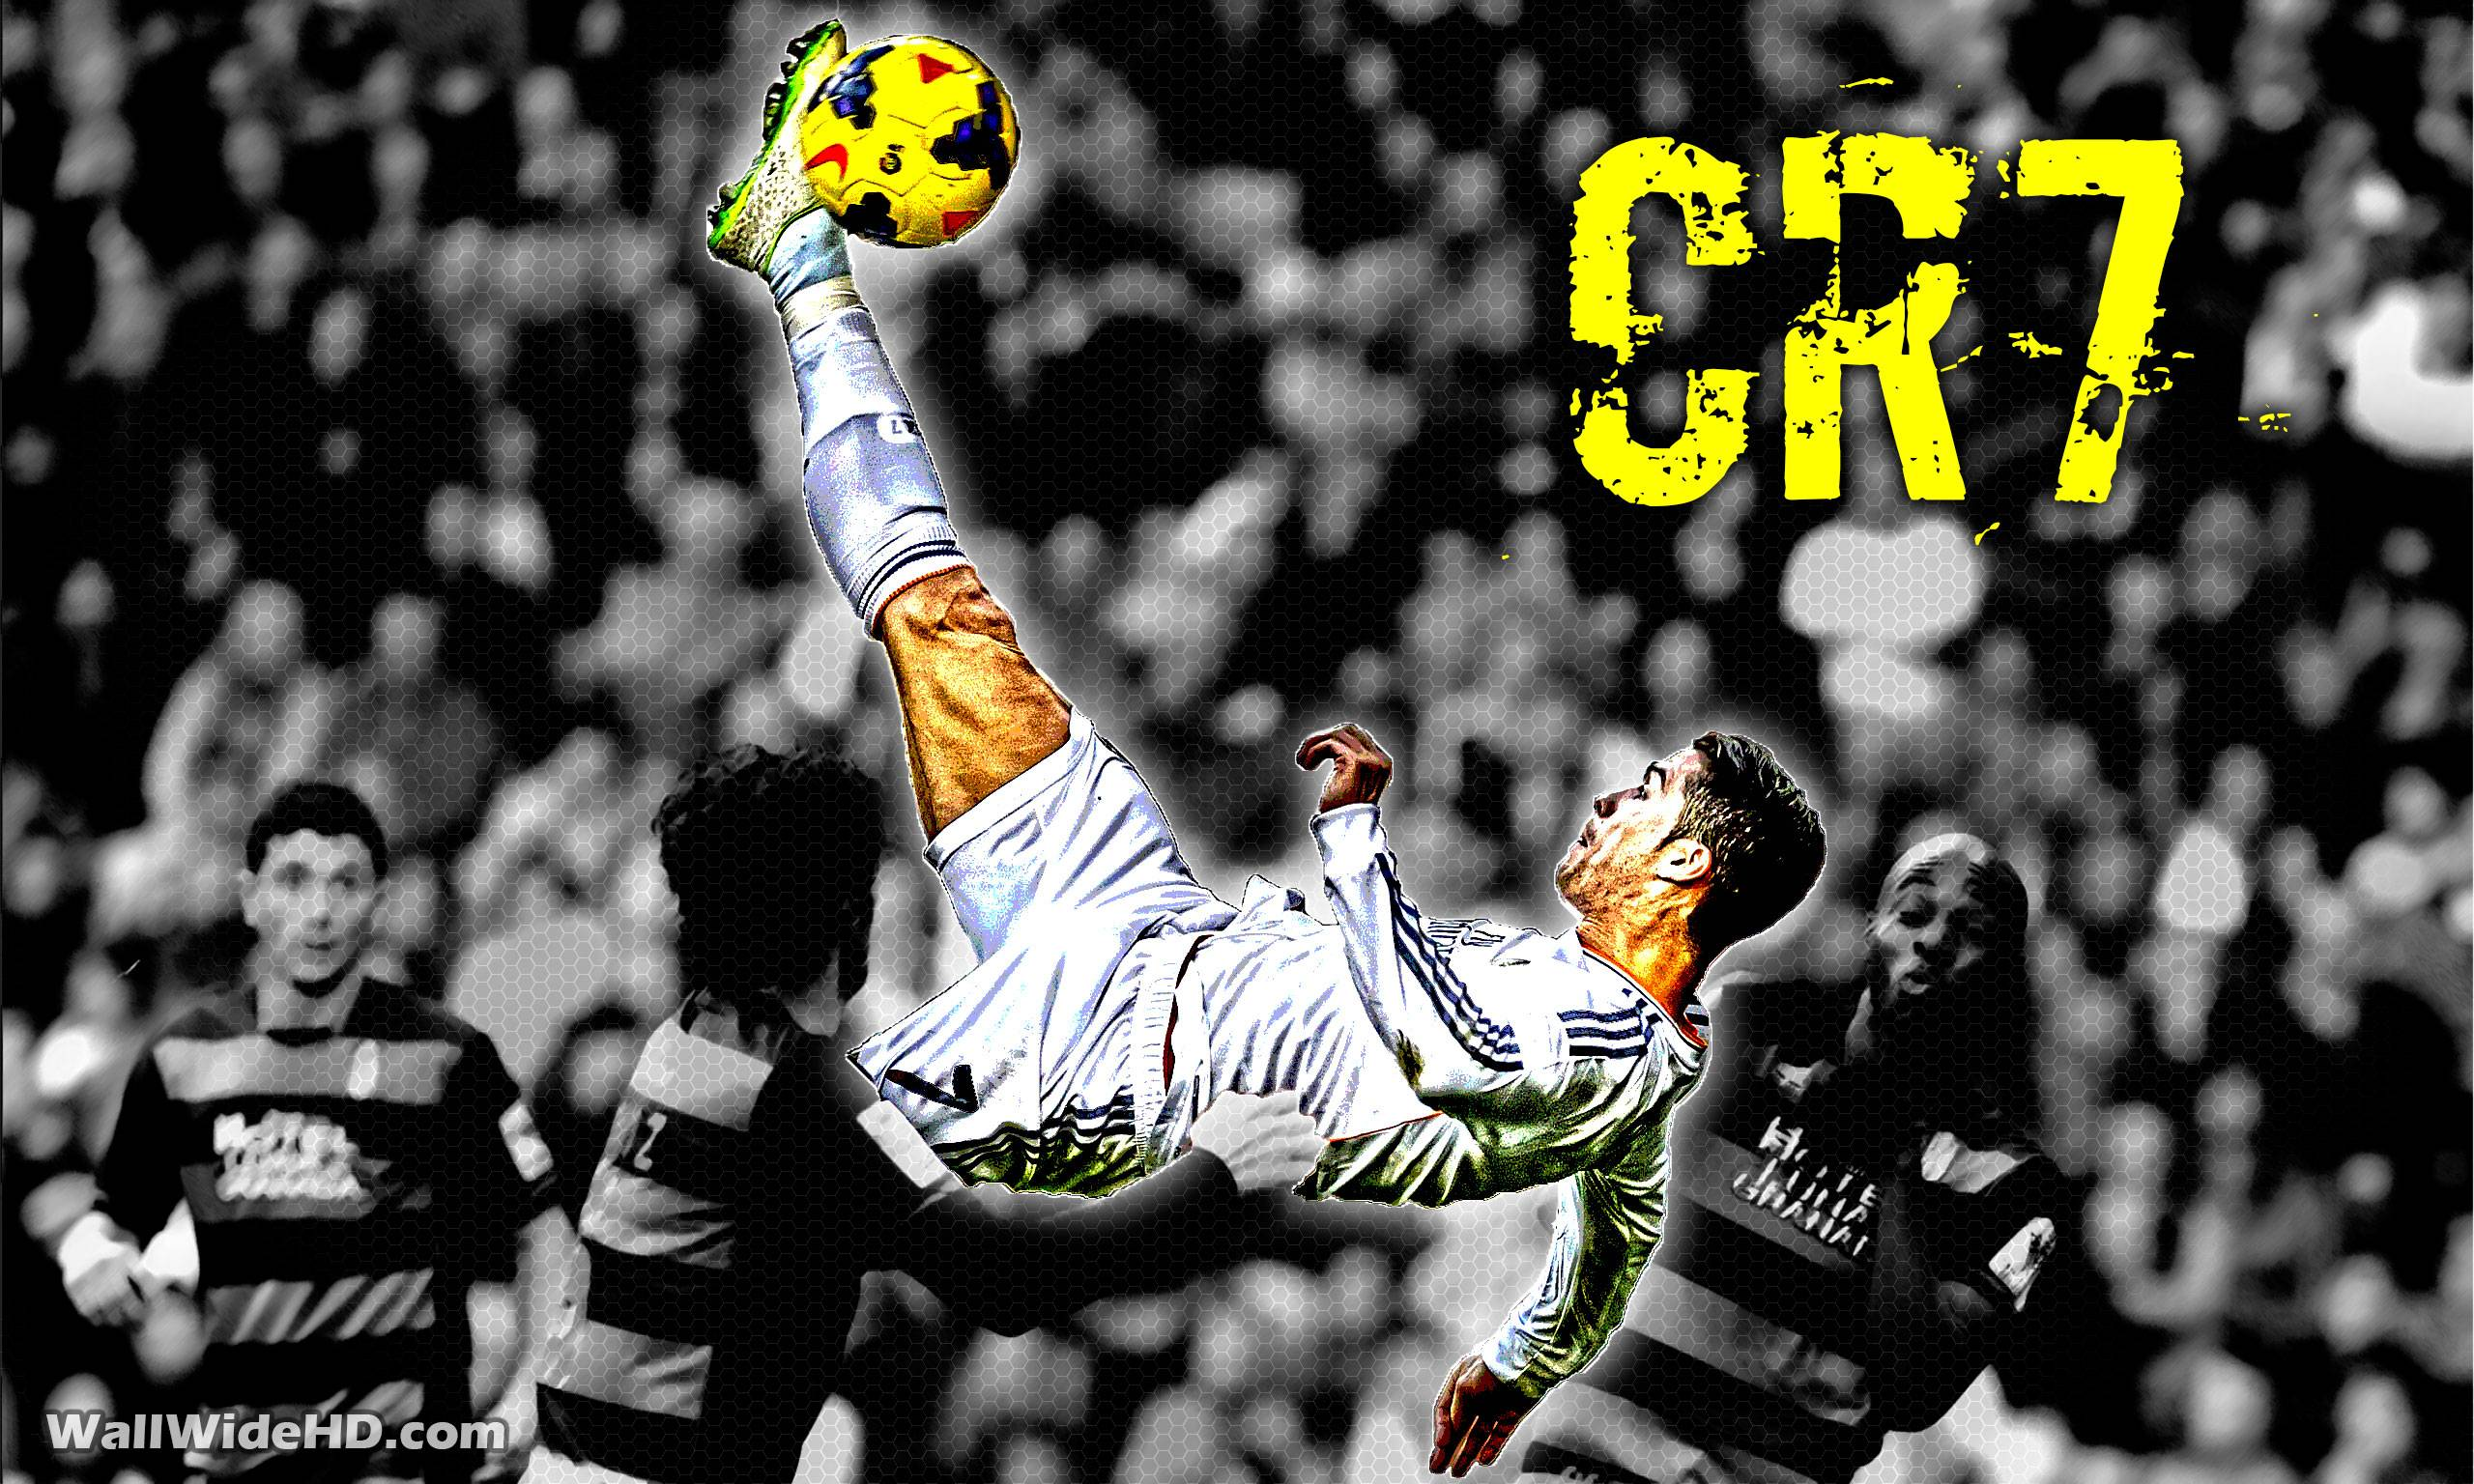 CR7 Real Madrid Overhead Kick Wallpaper Wide or HD Artistic 2560x1536